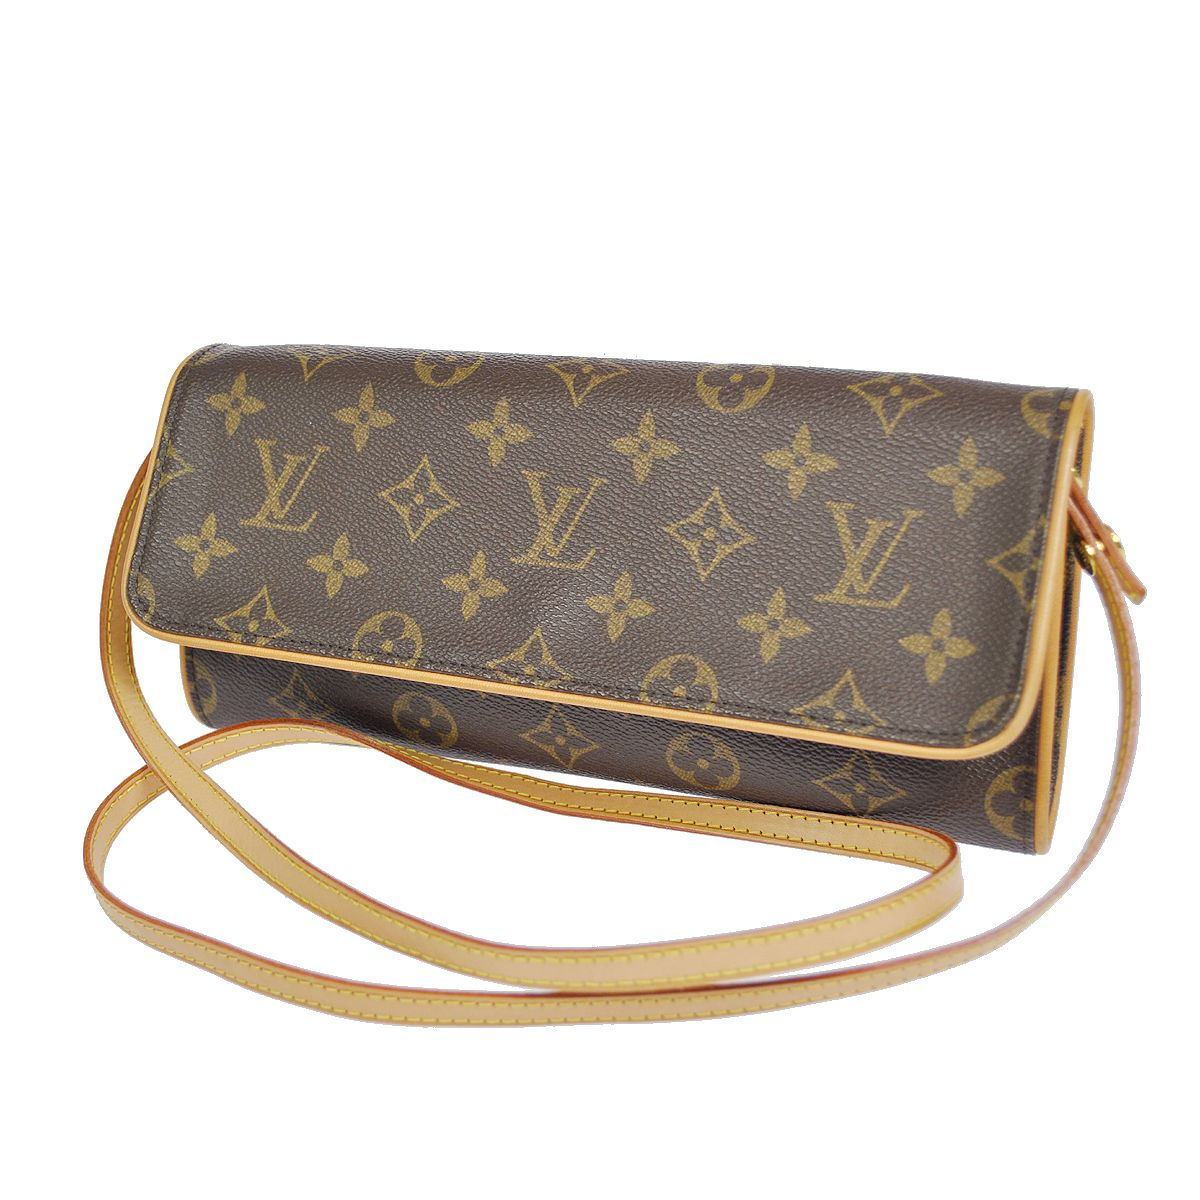 20cda295b8 SOLD - Authentic Louis Vuitton Monogram Canvas Twin Gm Clutch/Wallet Cross  Body Bag - My Frugal Fashionista